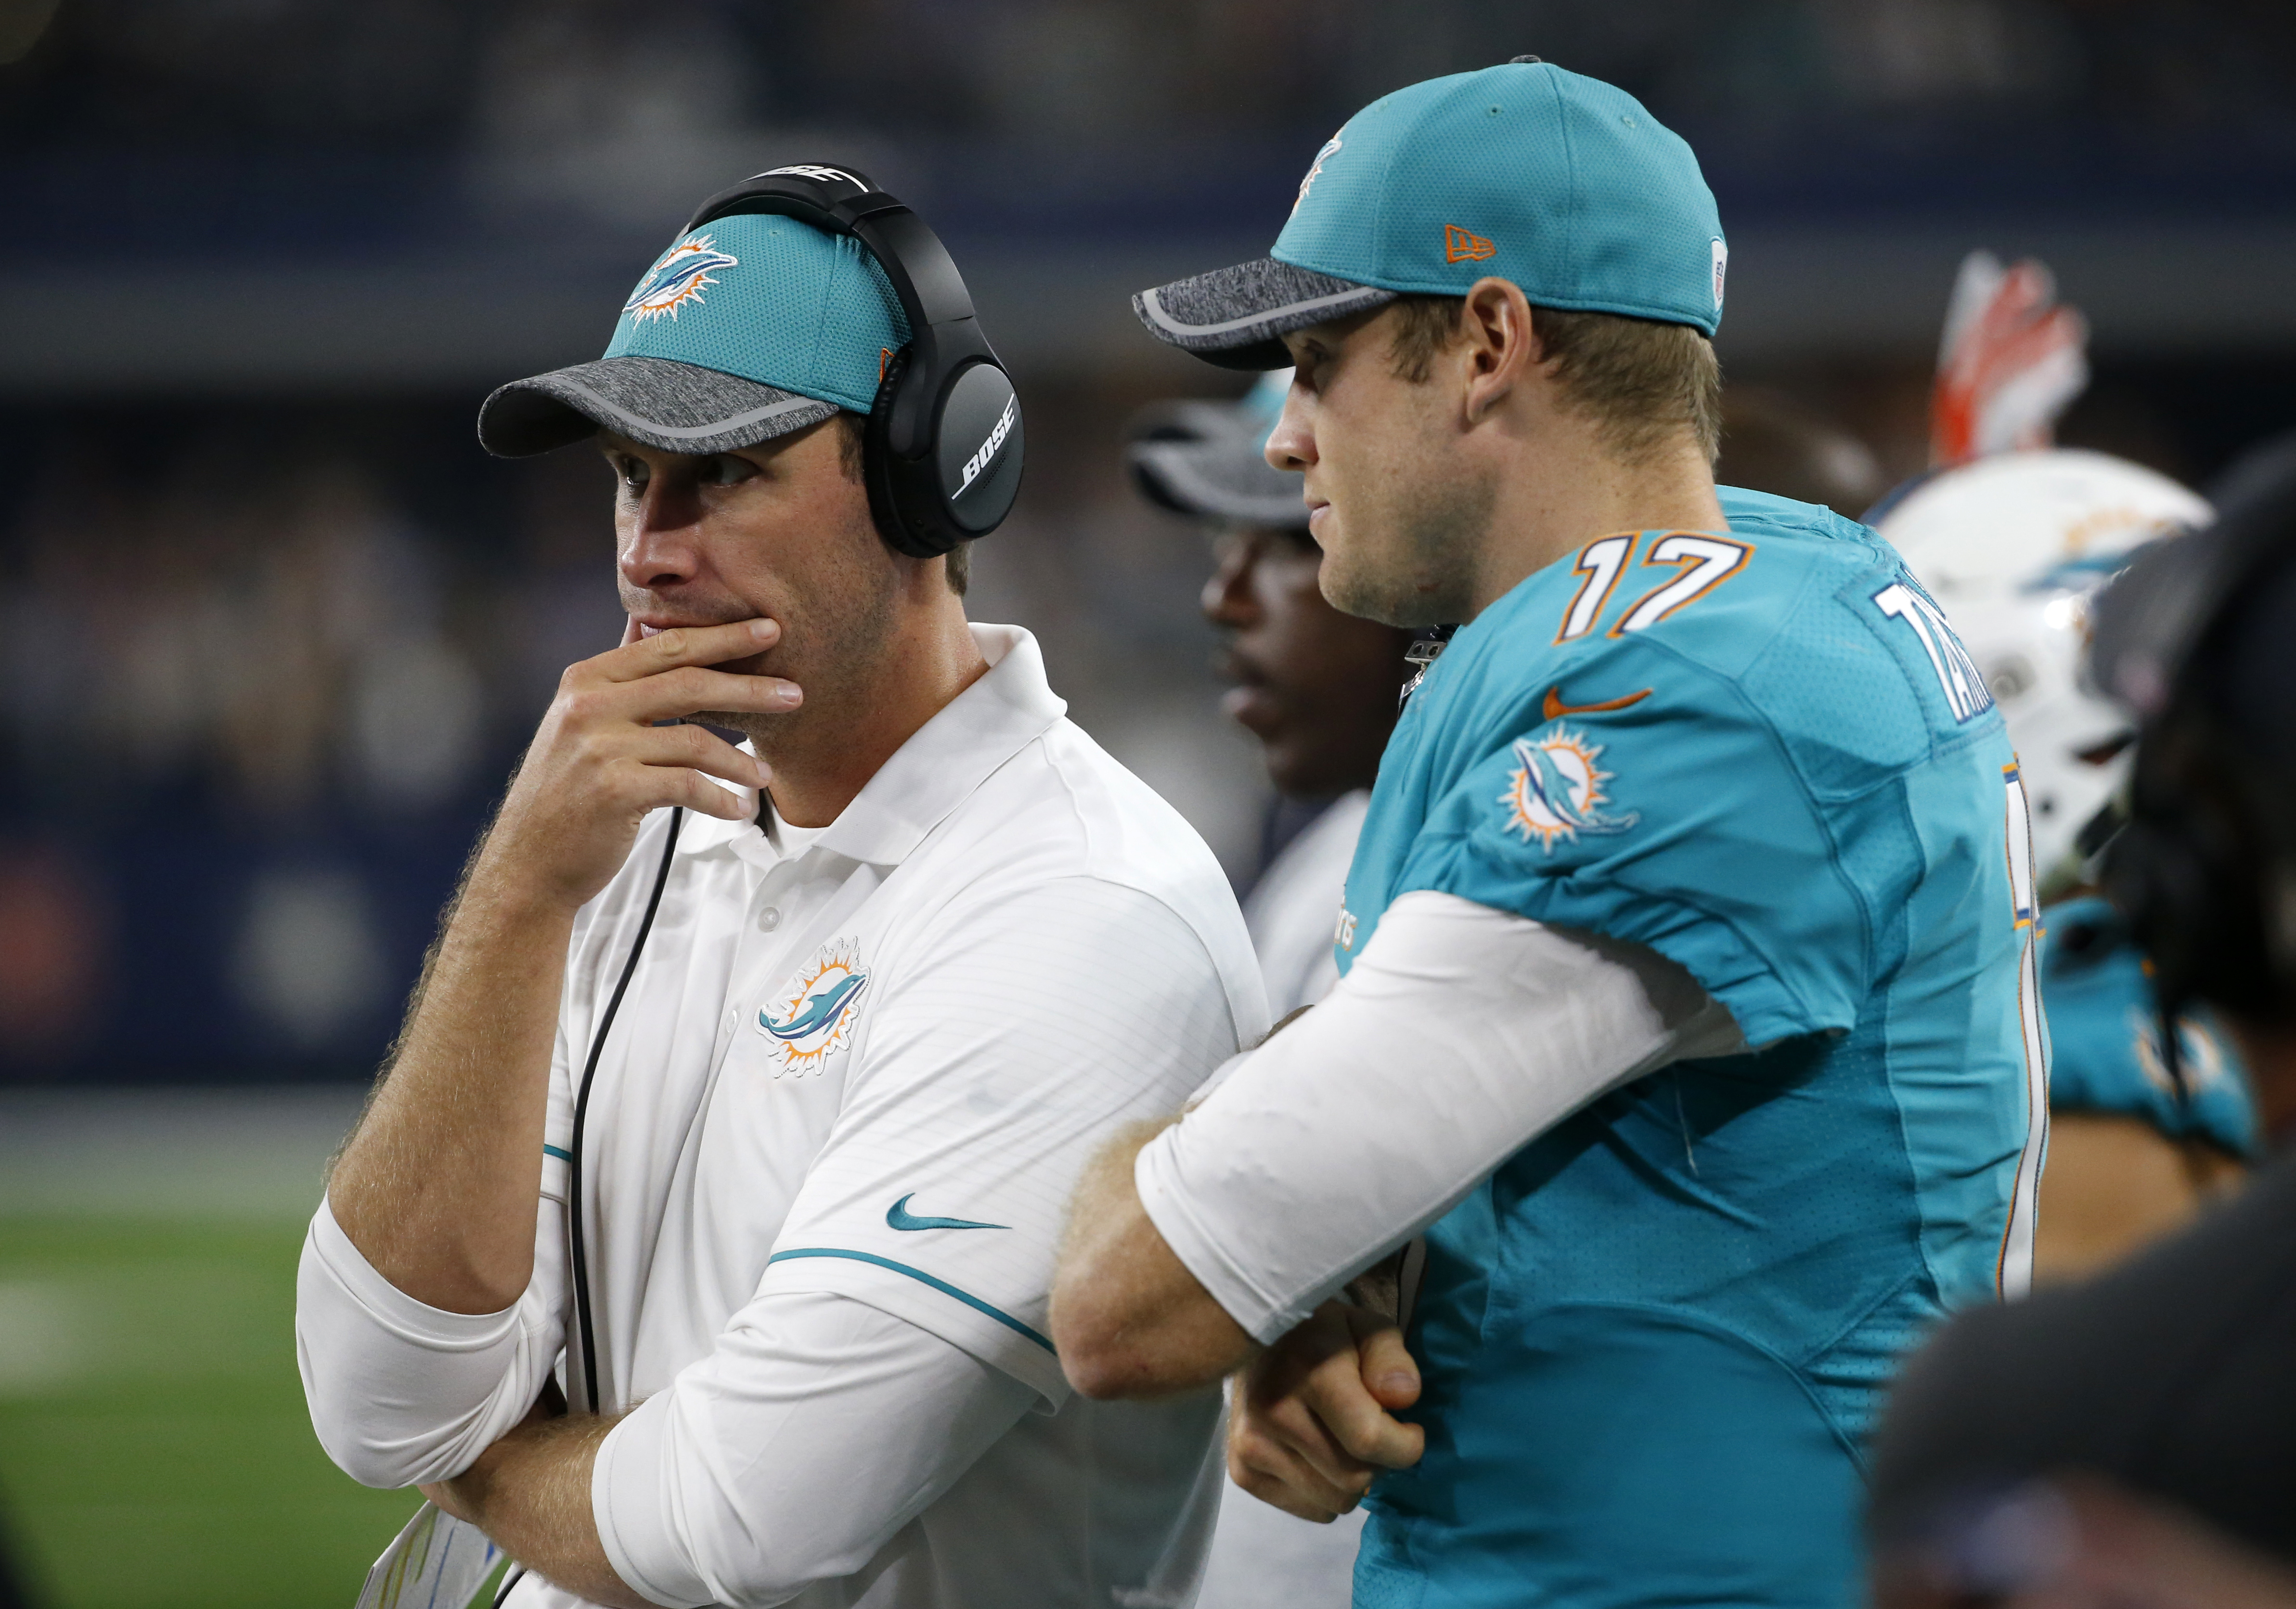 FILE- In this Aug. 19, 2016, file photo, Miami Dolphins head coach Adam Gase, left, stands on the sideline with quarterback Ryan Tannehill in the second half of an NFL preseason football game against the Dallas Cowboys in Arlington, Texas. New Miami Dolph